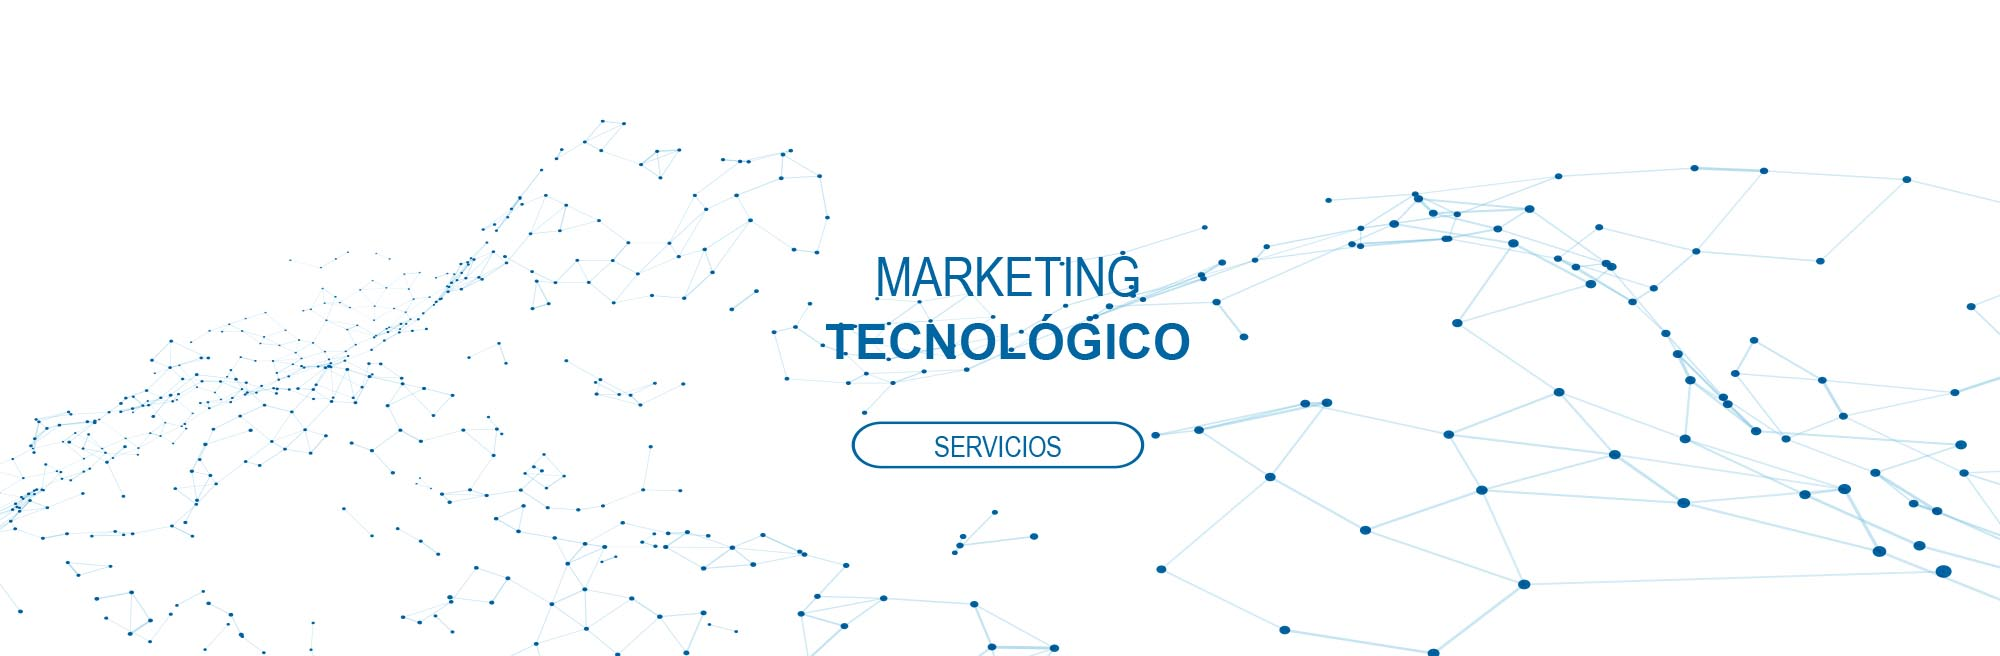 Conoce información de los servios de marketing digital